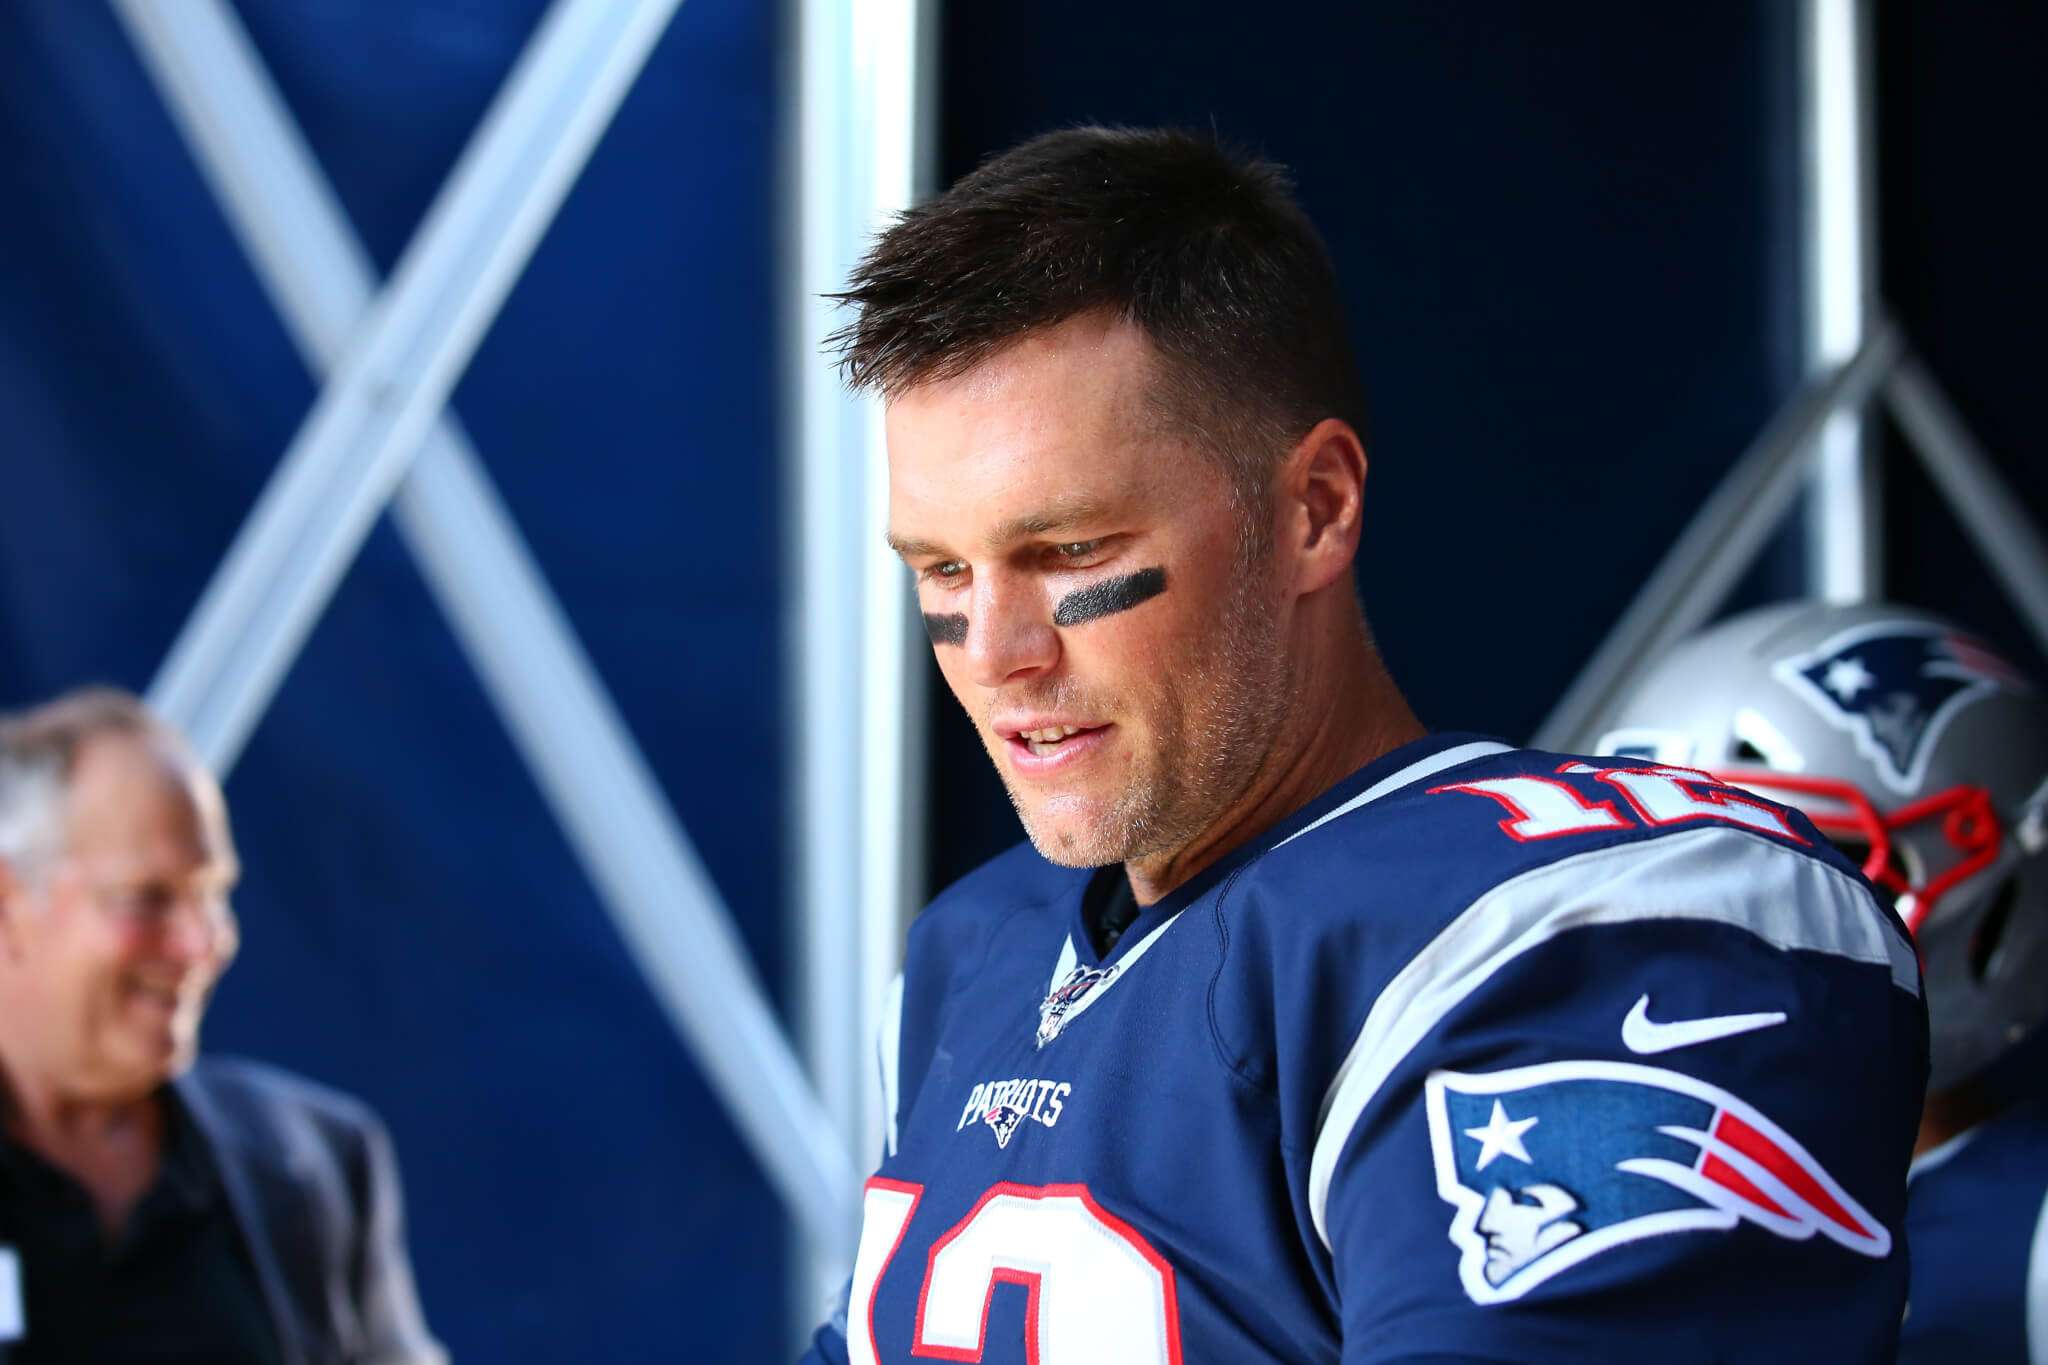 NFL: Tom Brady to leave the New England Patriots